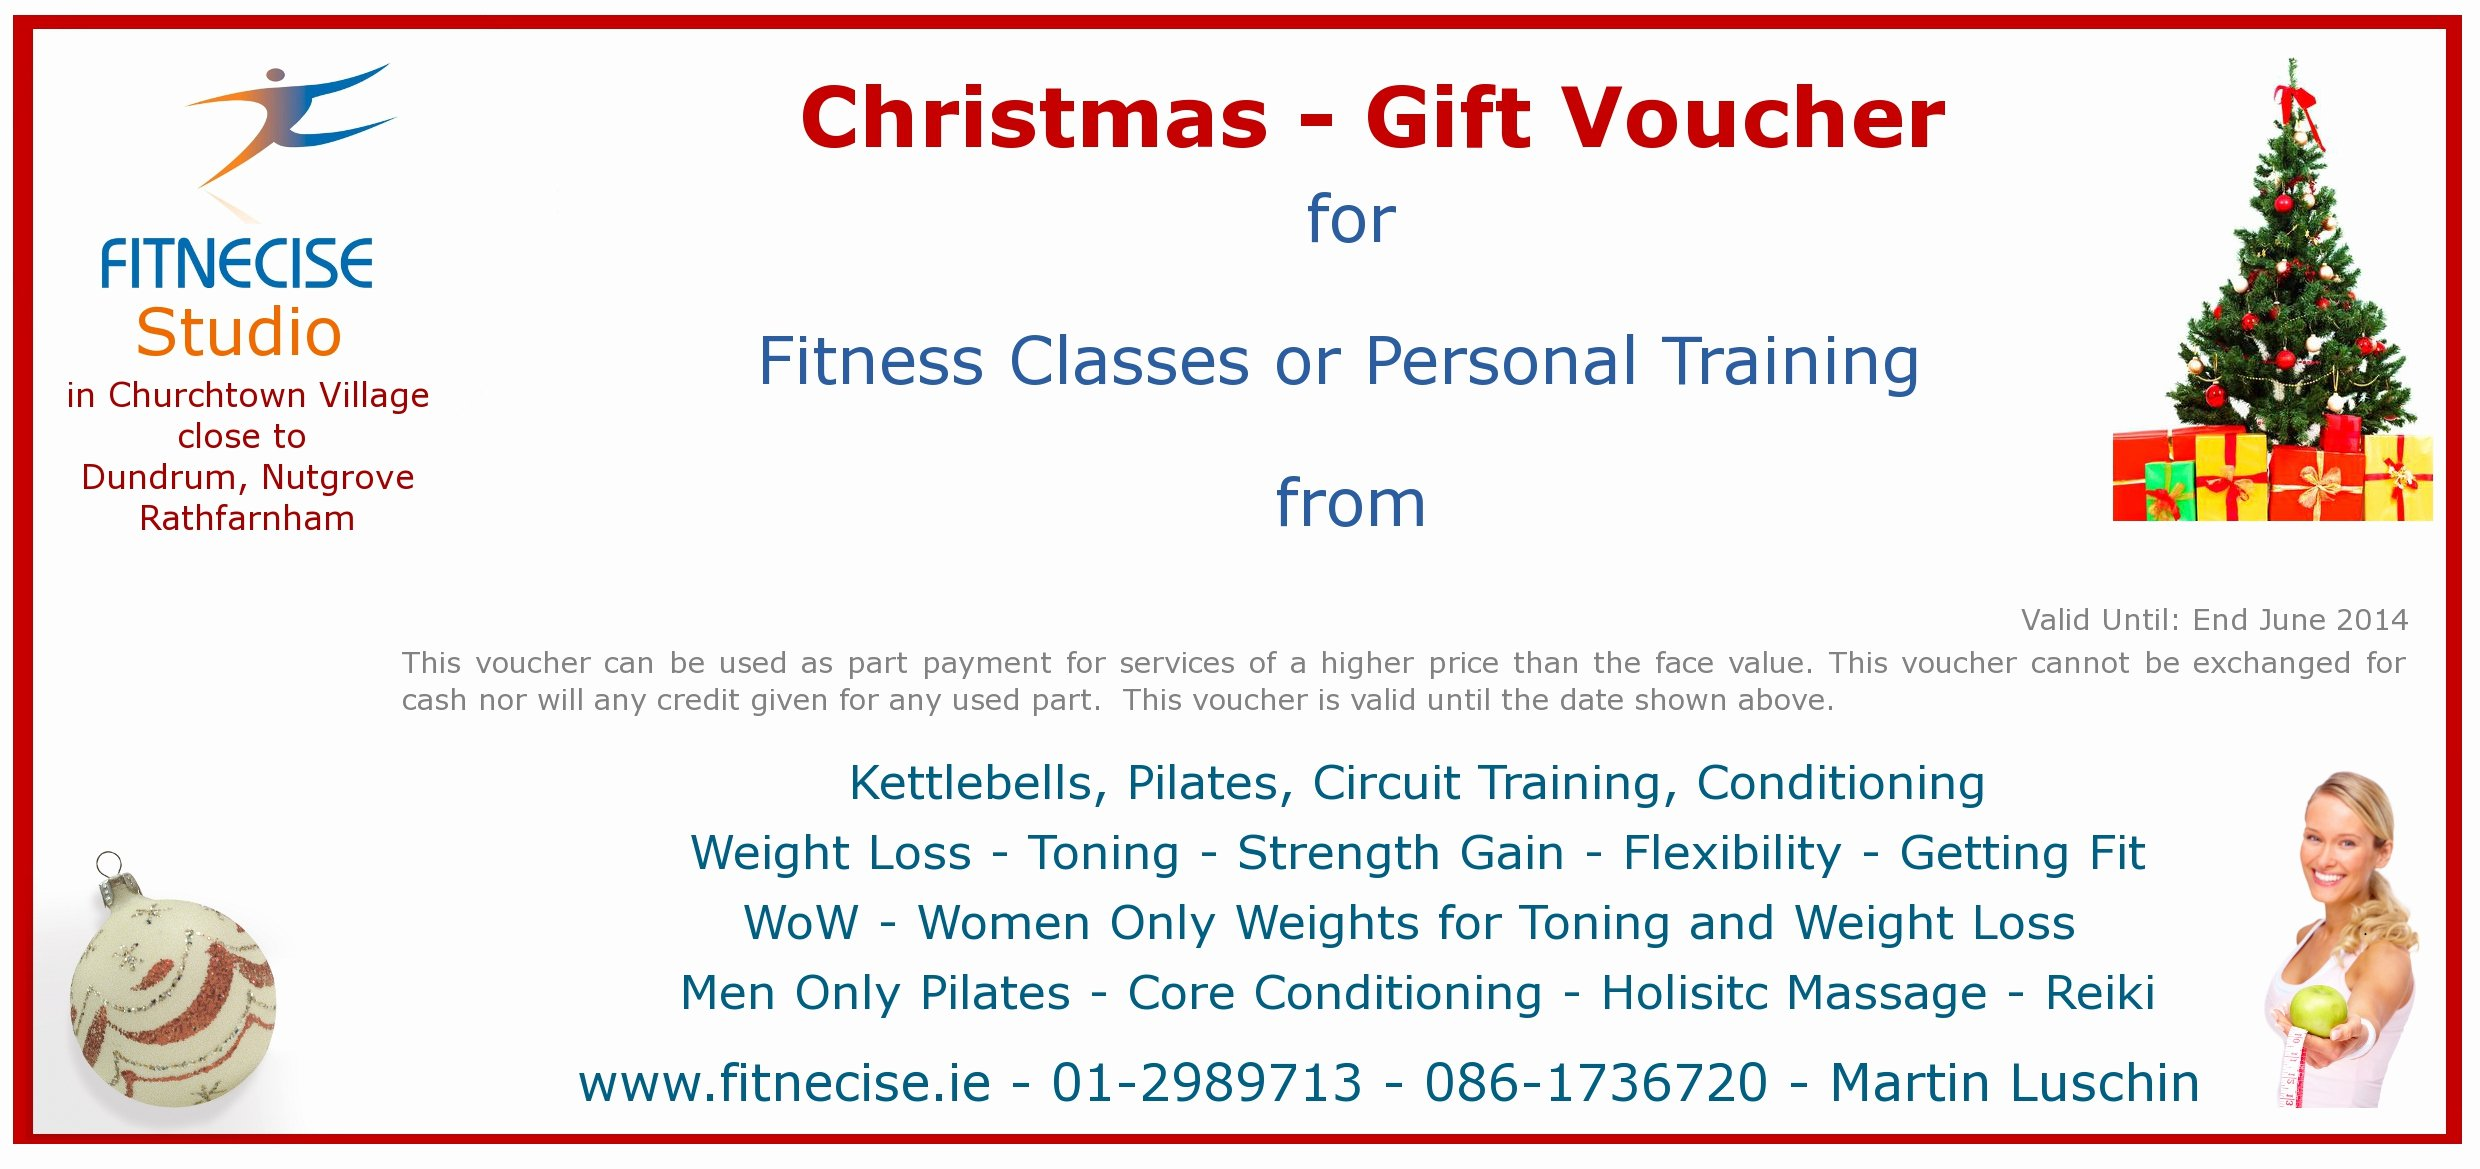 Fitness Gift Certificate Template Elegant Christmas – Gift Vouchers Available In south Dublin